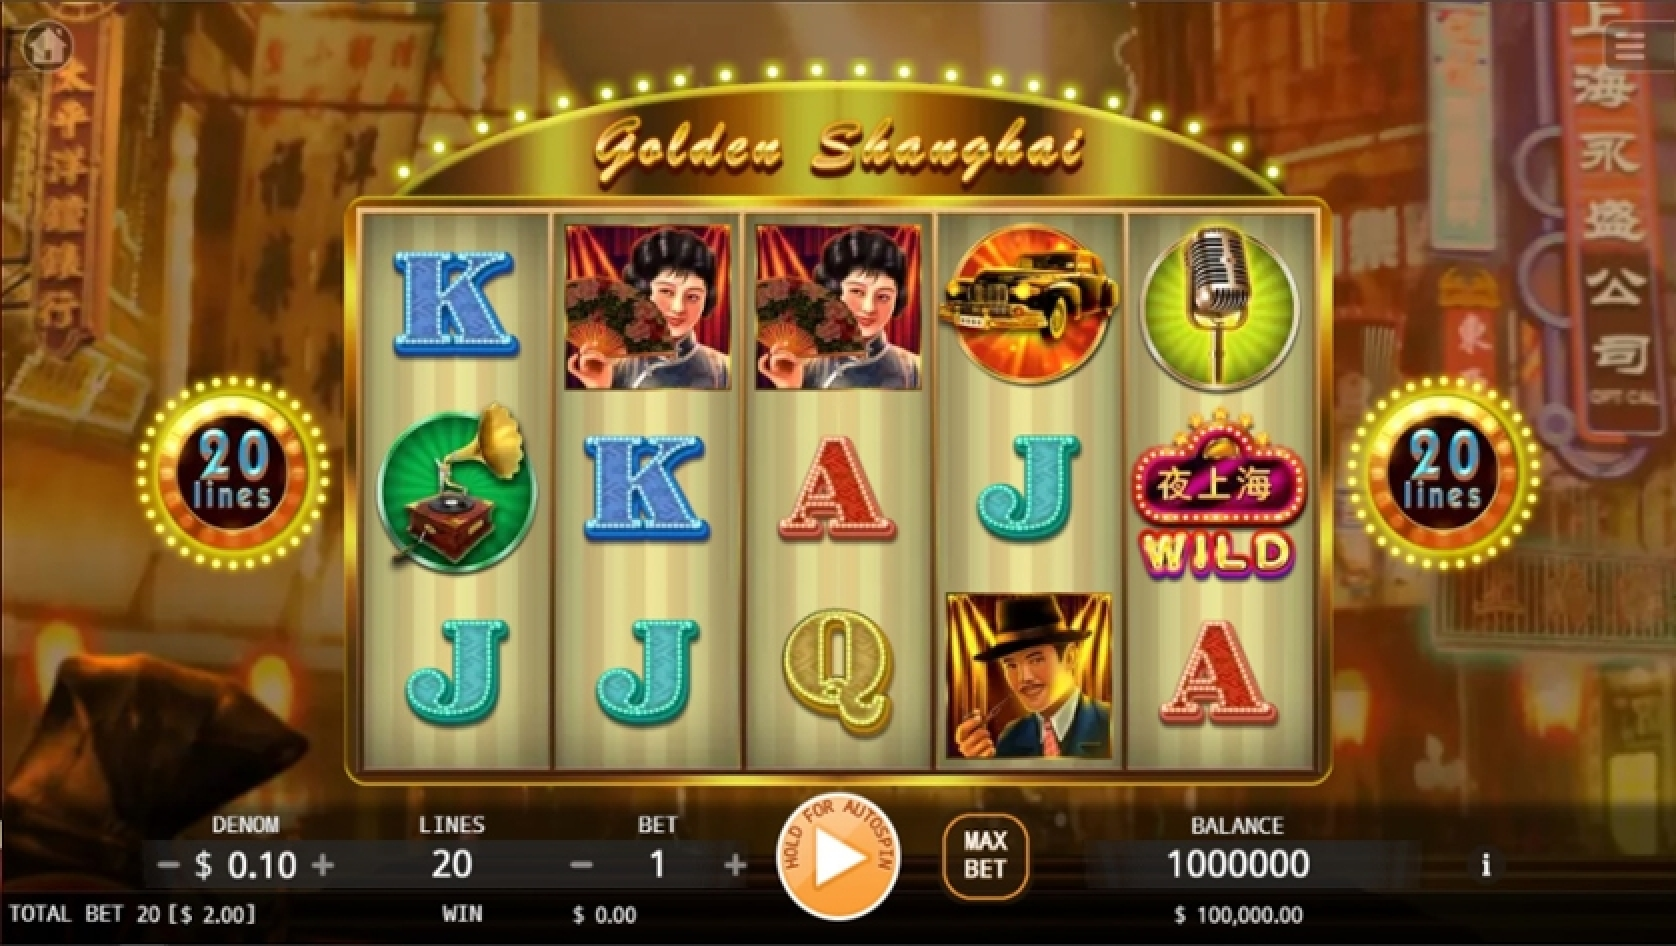 The Golden Shanghai Online Slot Demo Game by KA Gaming